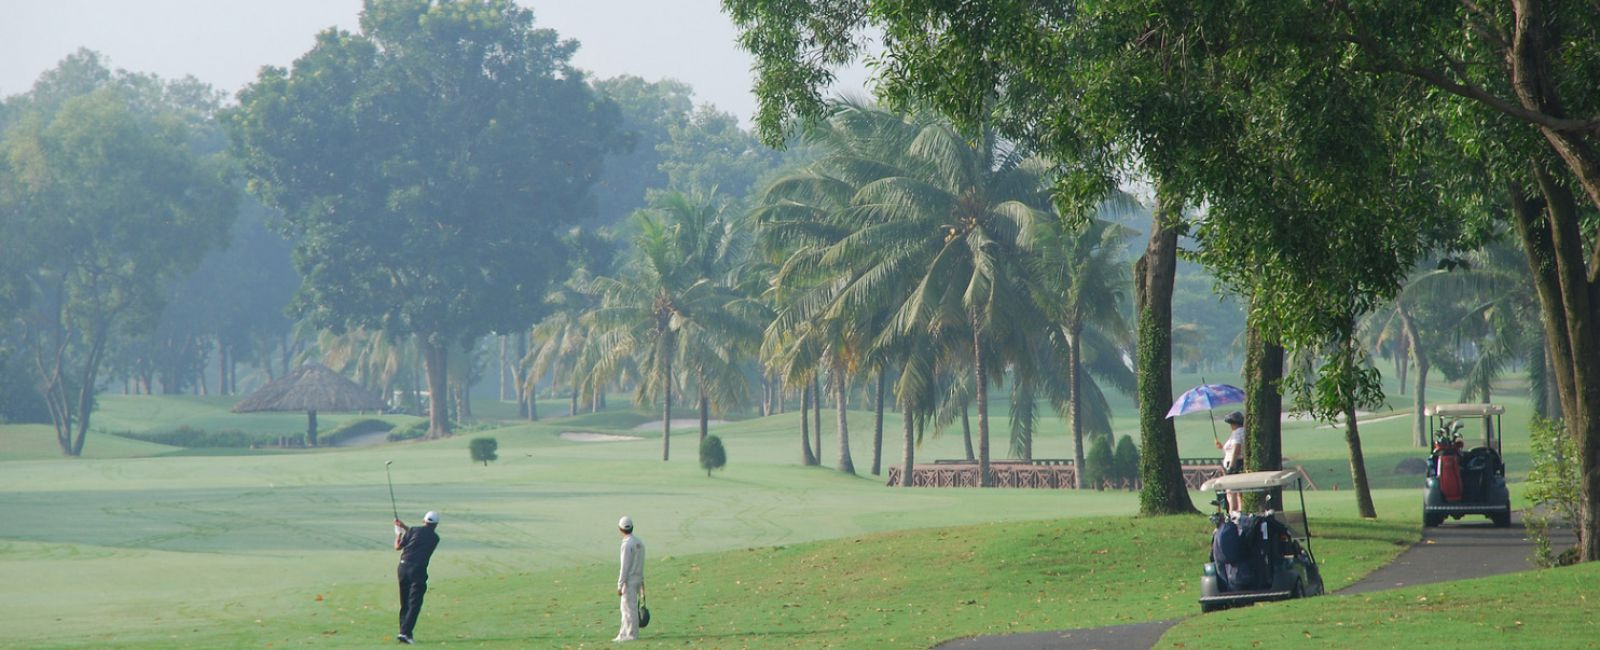 5 Day Golf Ho Chi Minh and Stay at Hotel des Arts